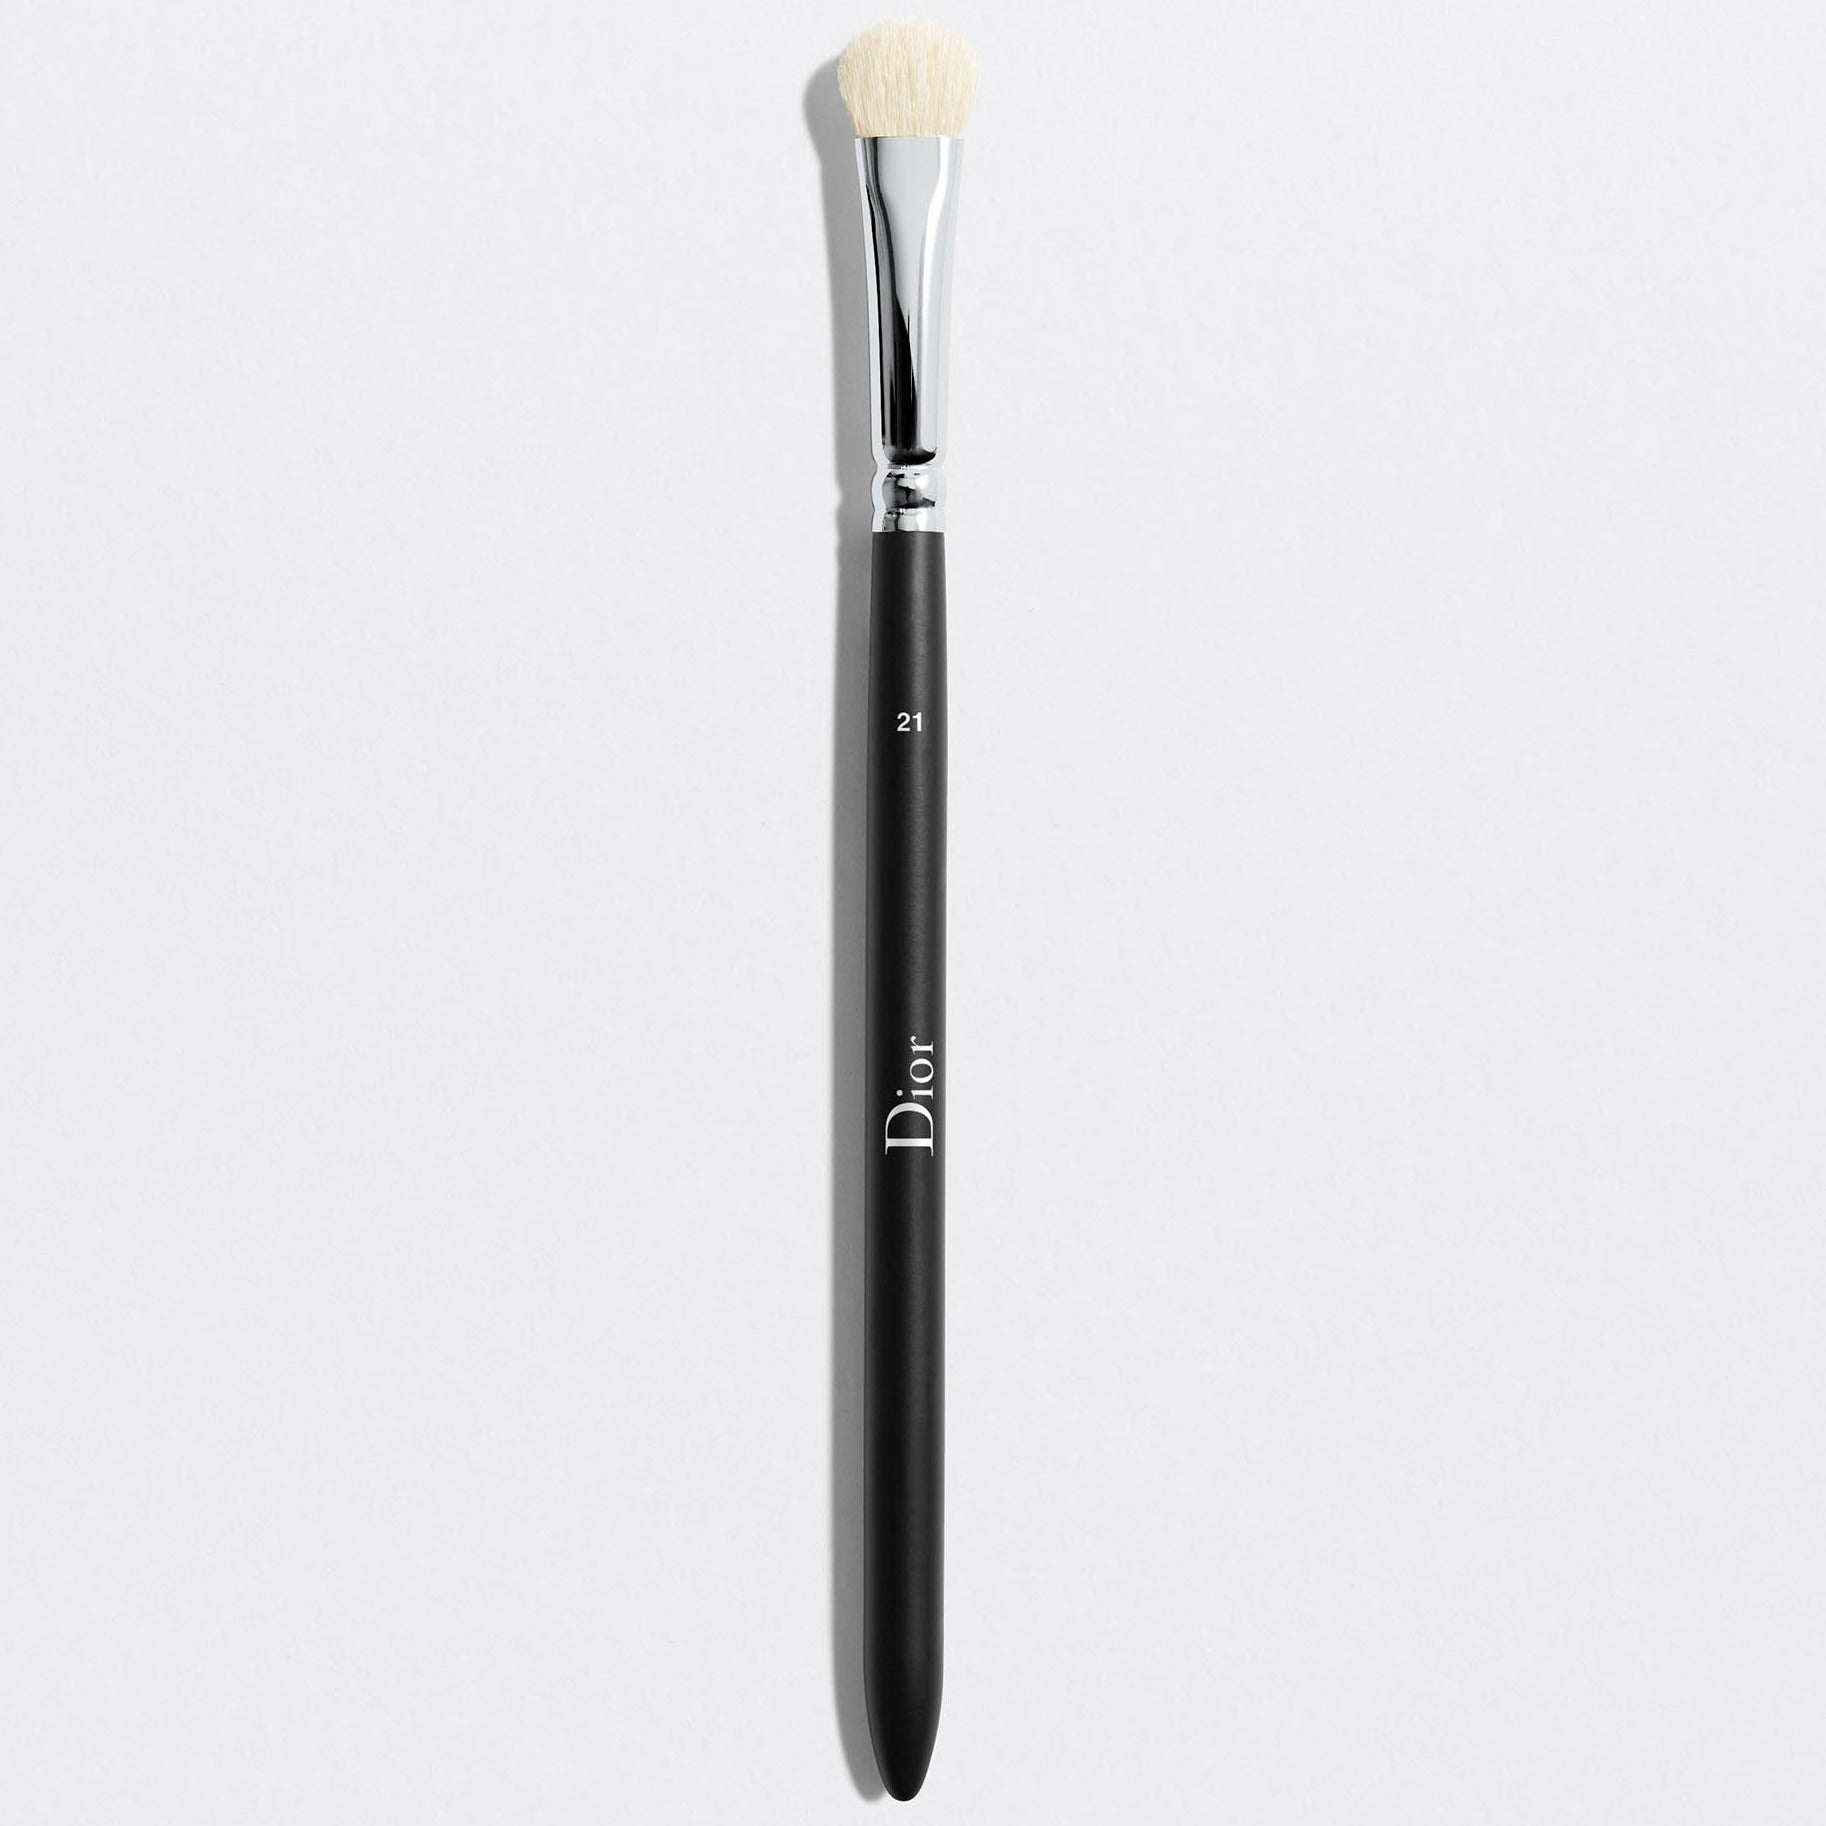 DIOR BACKSTAGE EYESHADOW SHADER BRUSH N° 21 | Eyeshadow shader brush n° 21